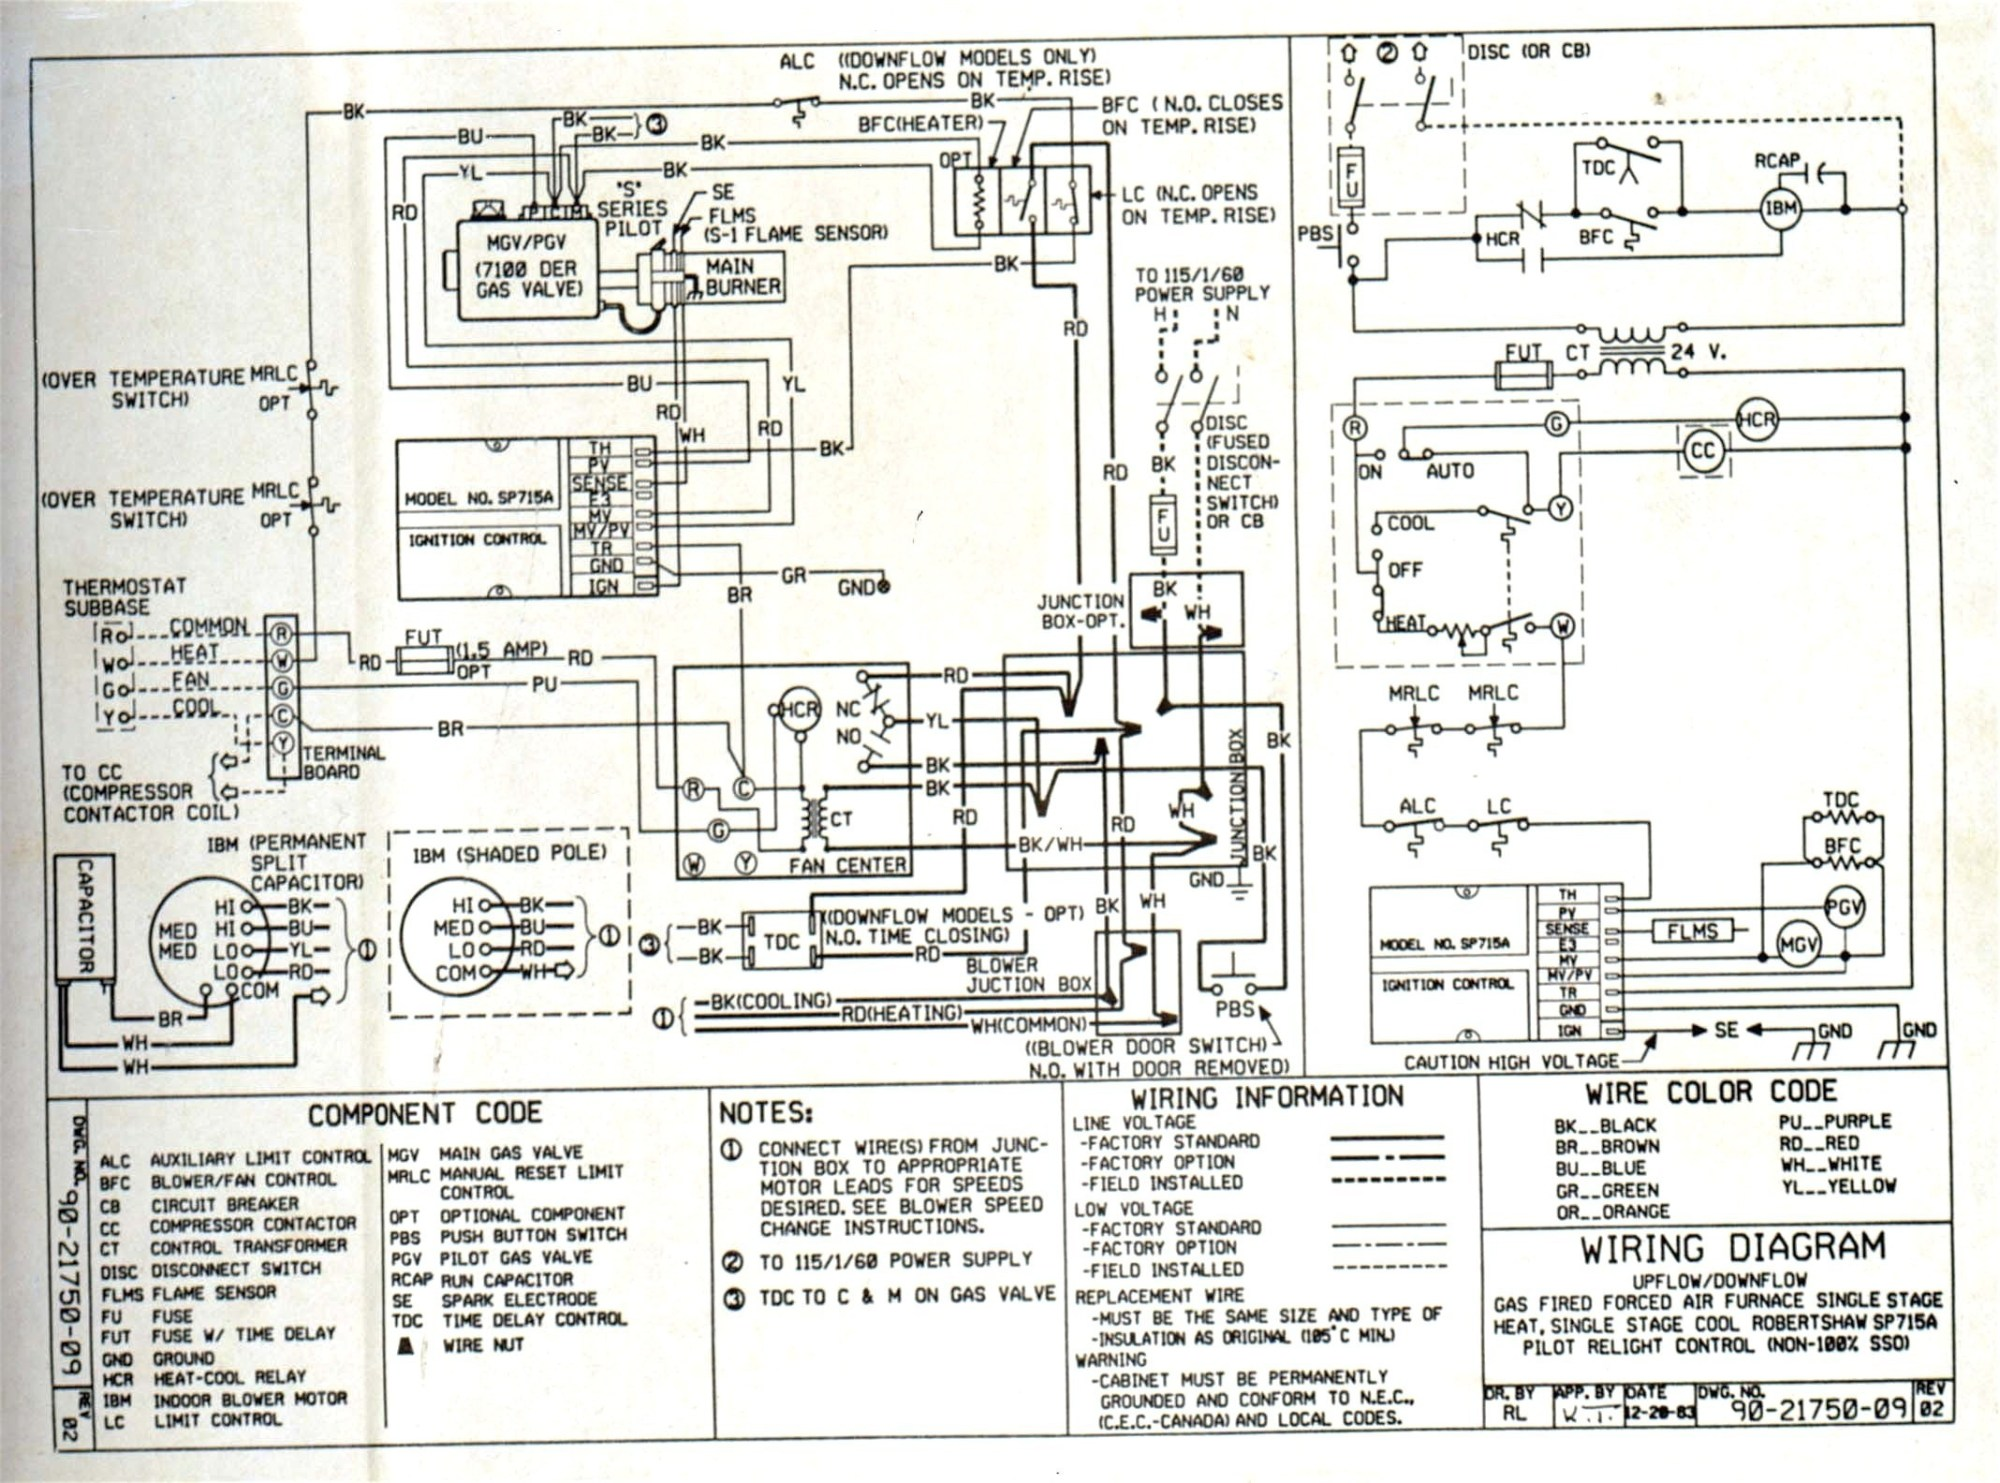 hight resolution of wiring ruud diagram uomb 084c wiring diagram for you ruud wiring diagram air handler ruud 13